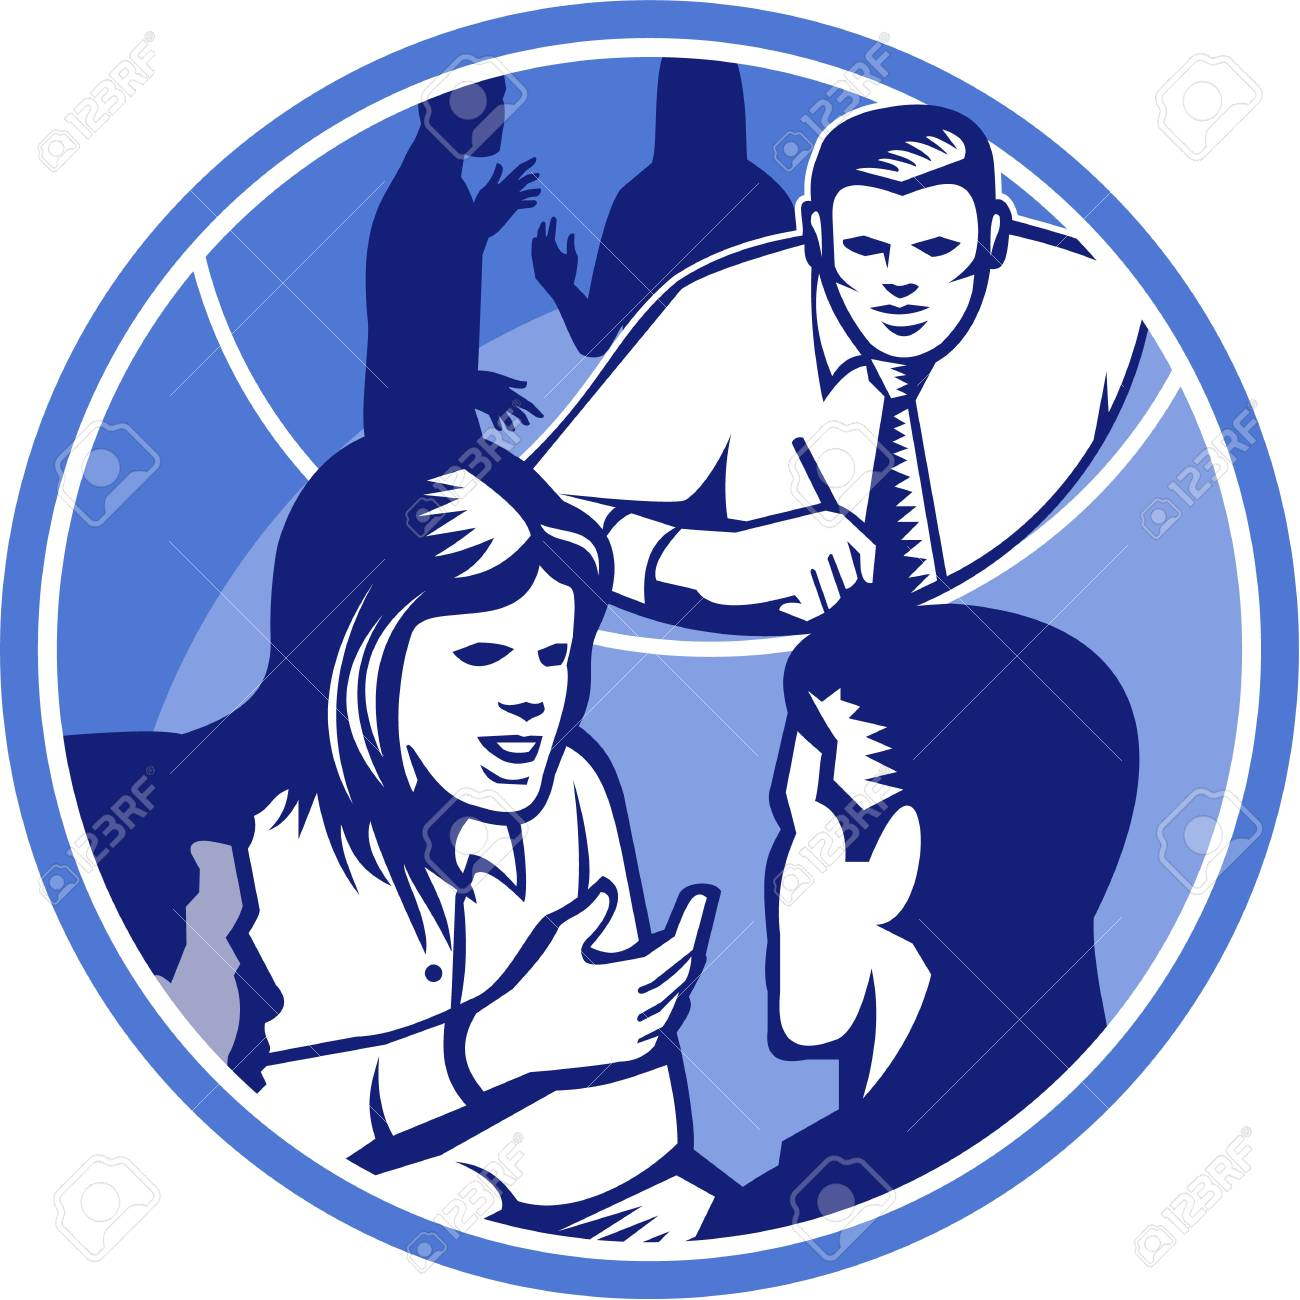 Illustration of a female office worker businesswoman talking and in discussion with colleagues done in retro woodcut style set inside circle. Stock Vector - 21699940